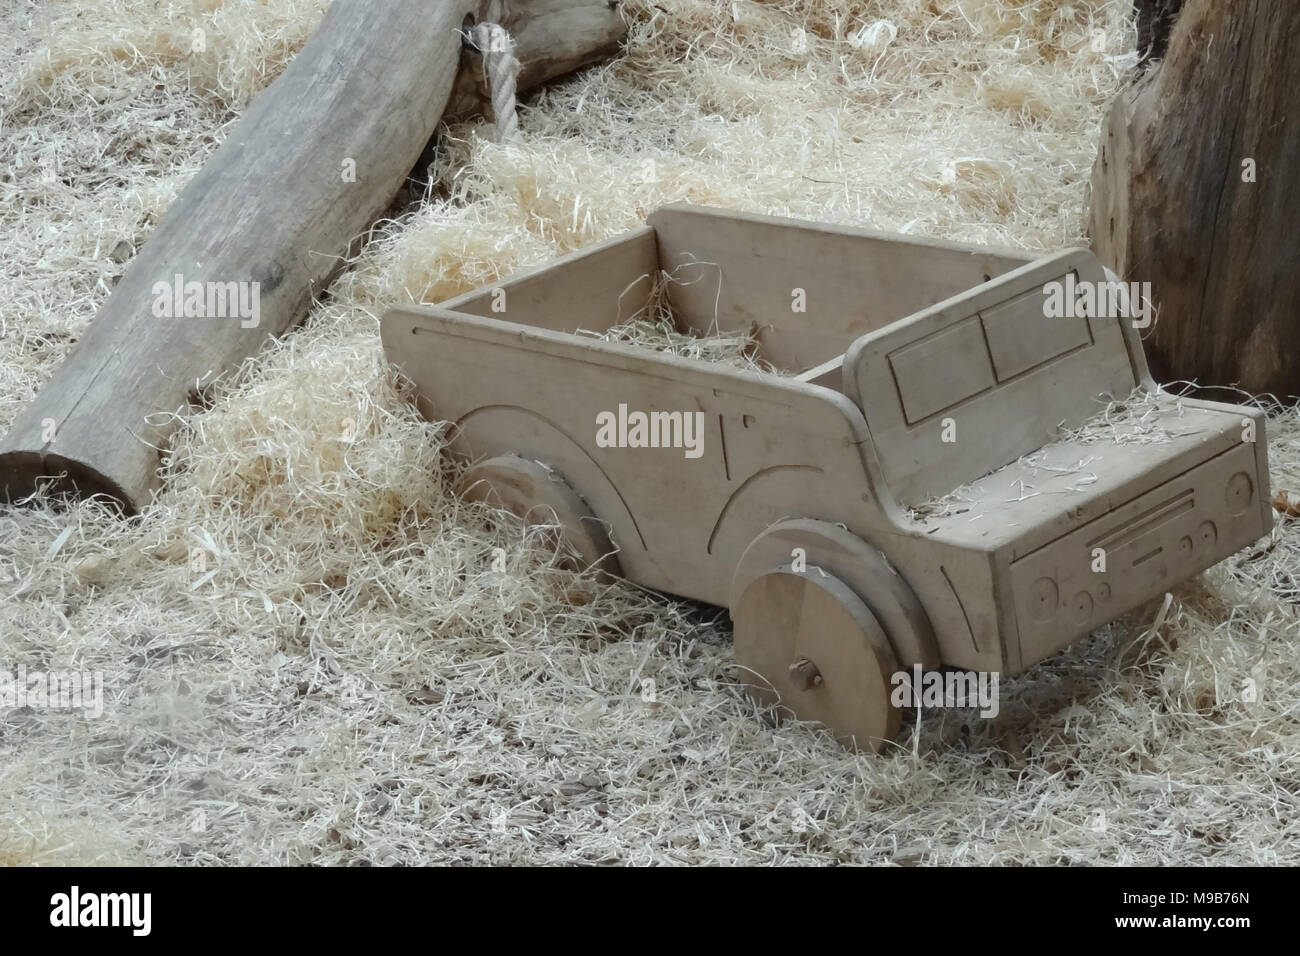 Handcrafted wooden train on an beige carpet, retro toned image - Stock Image